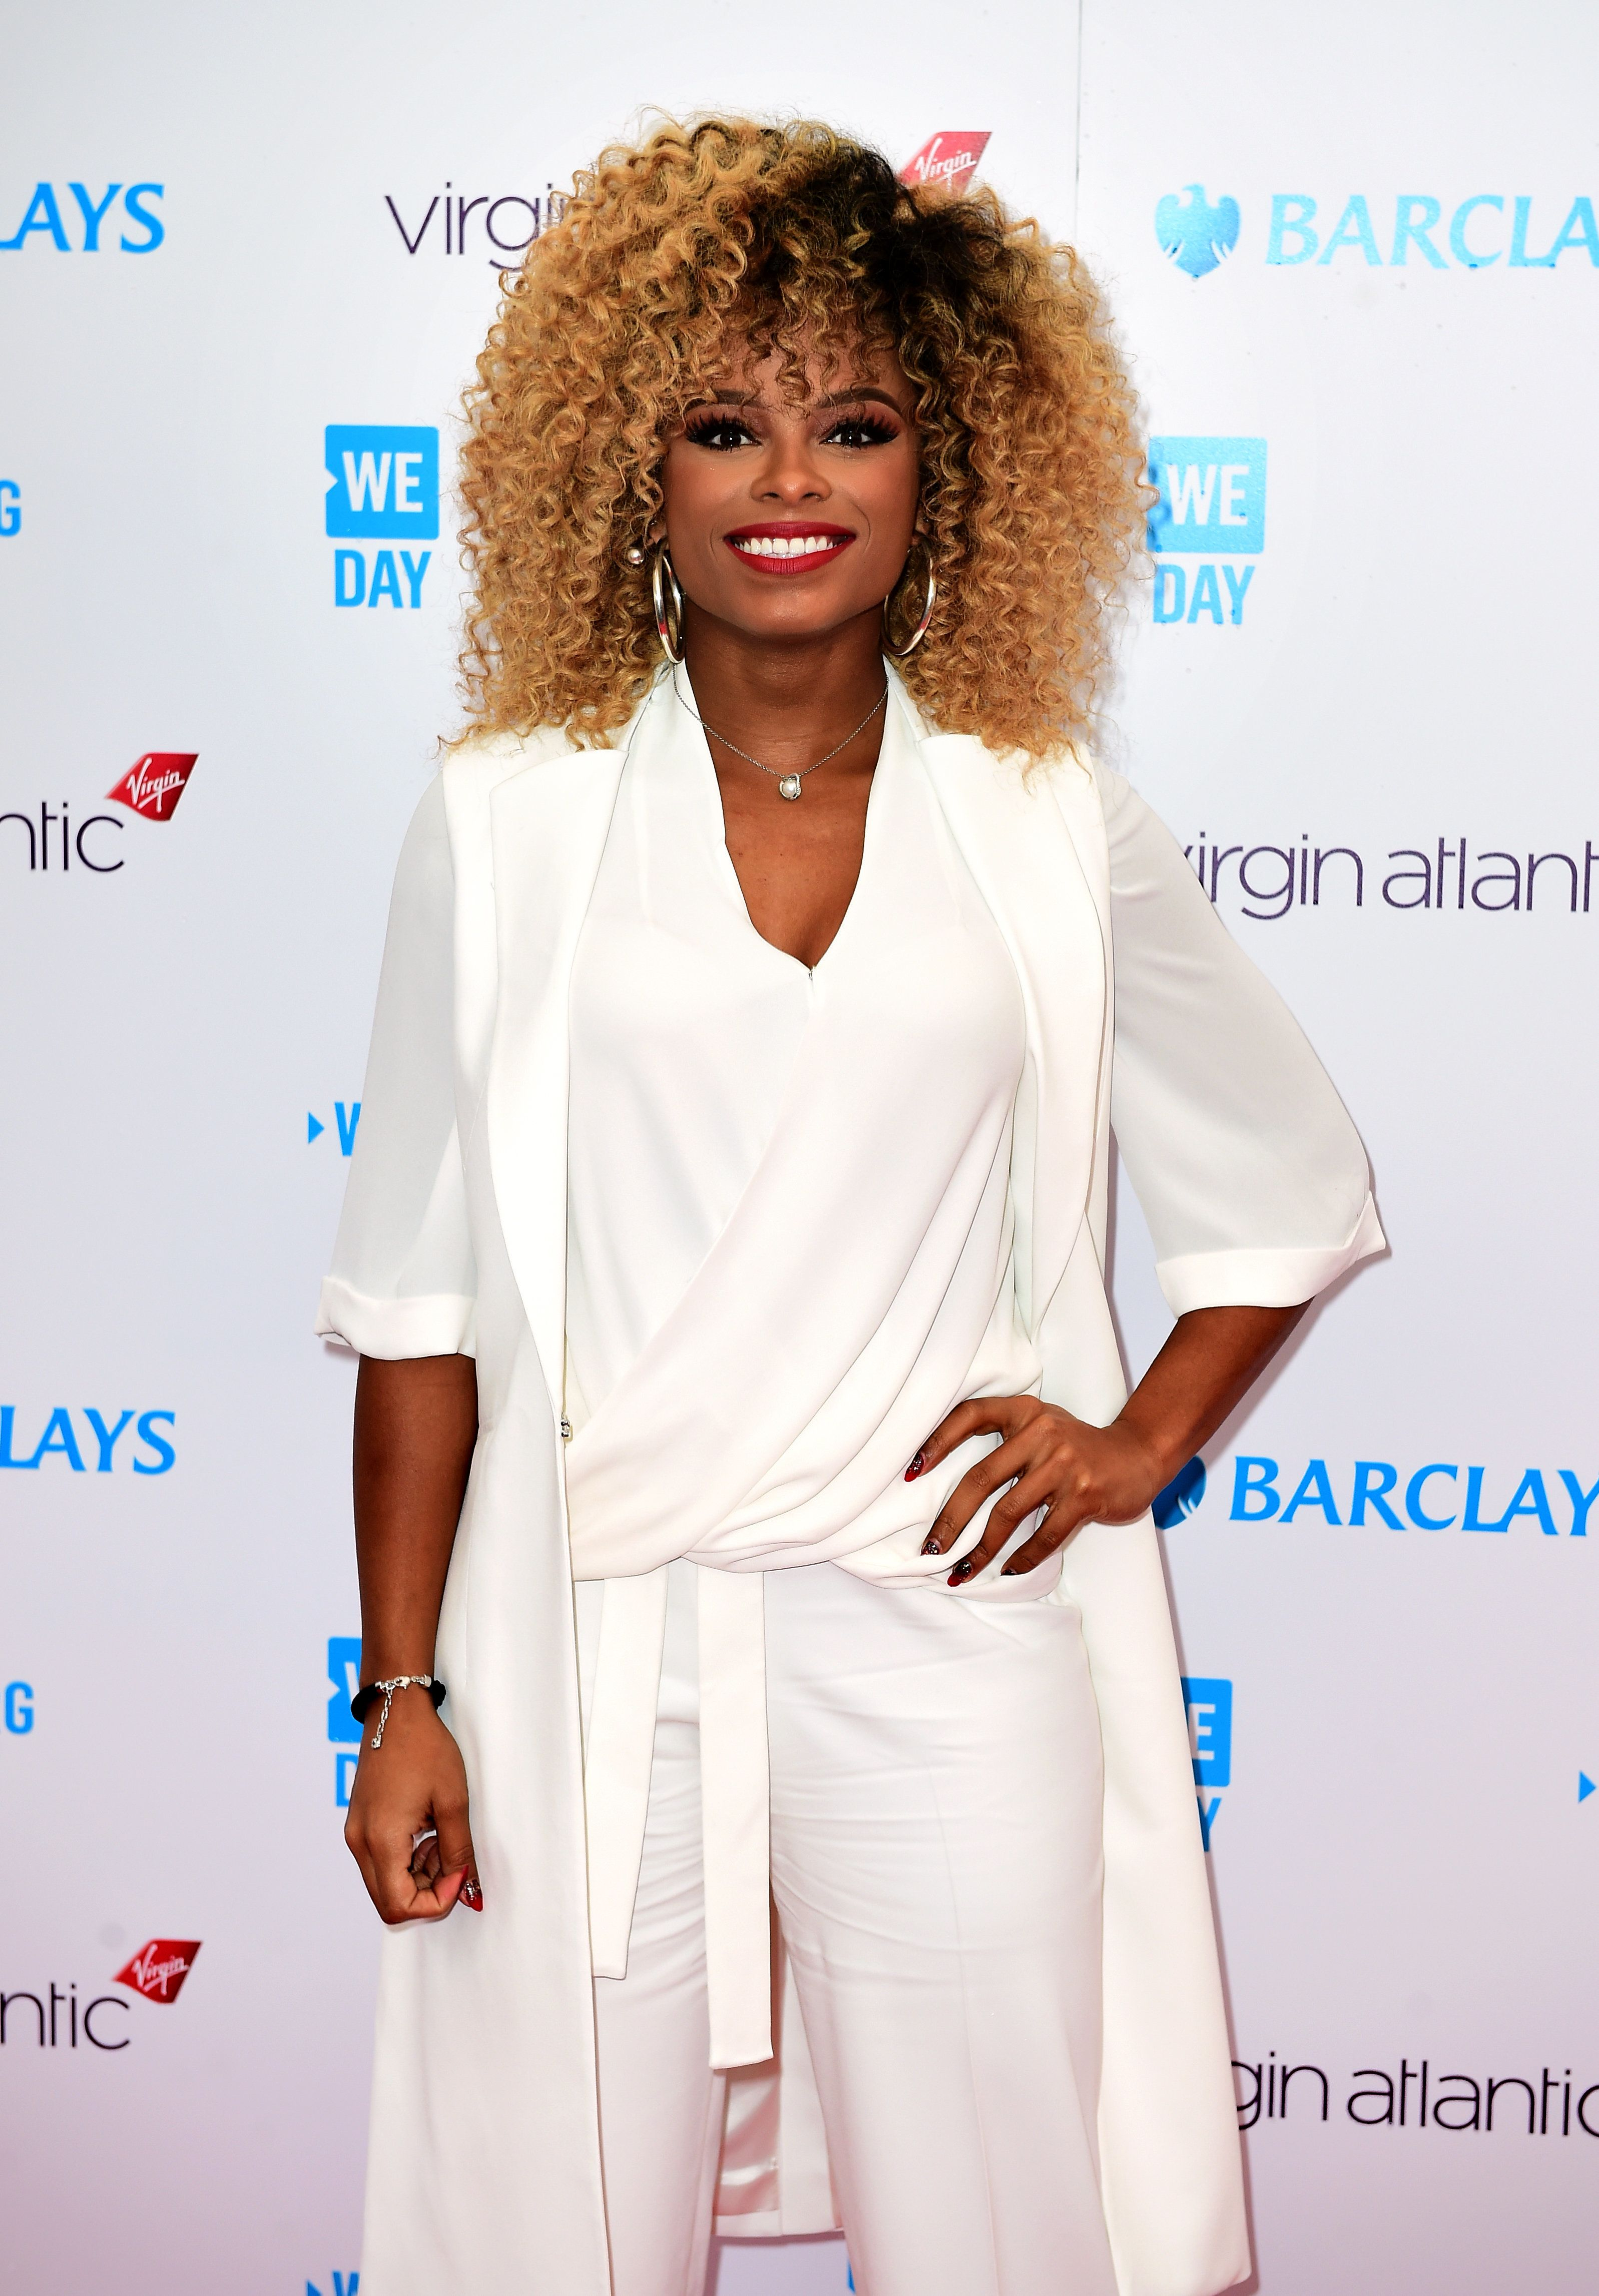 Fleur East Sports Two Unique Looks At We